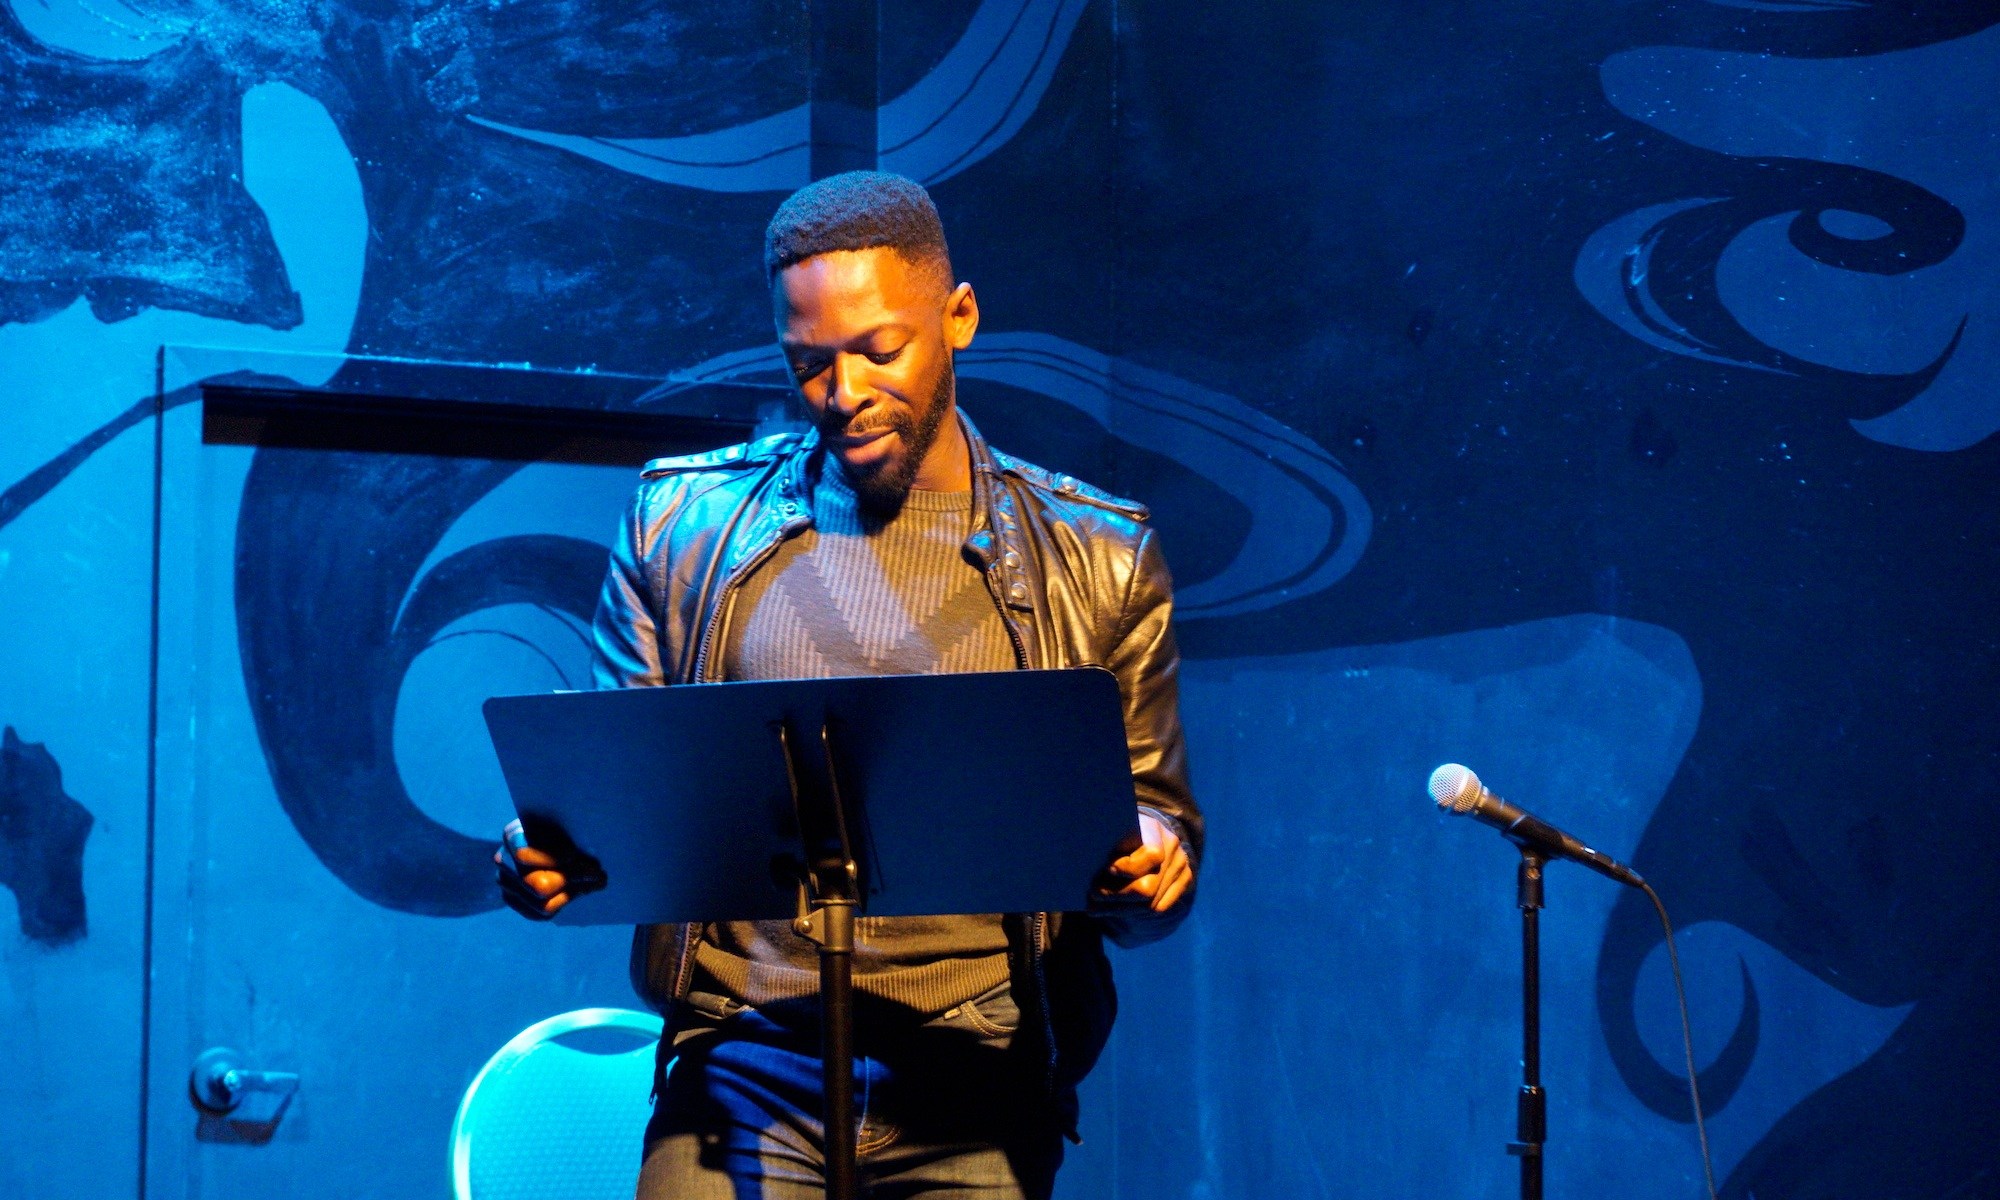 Performer Rotimi Agbabiaka in a black leather jacket and blue lighting stands behind a music stand onstage.